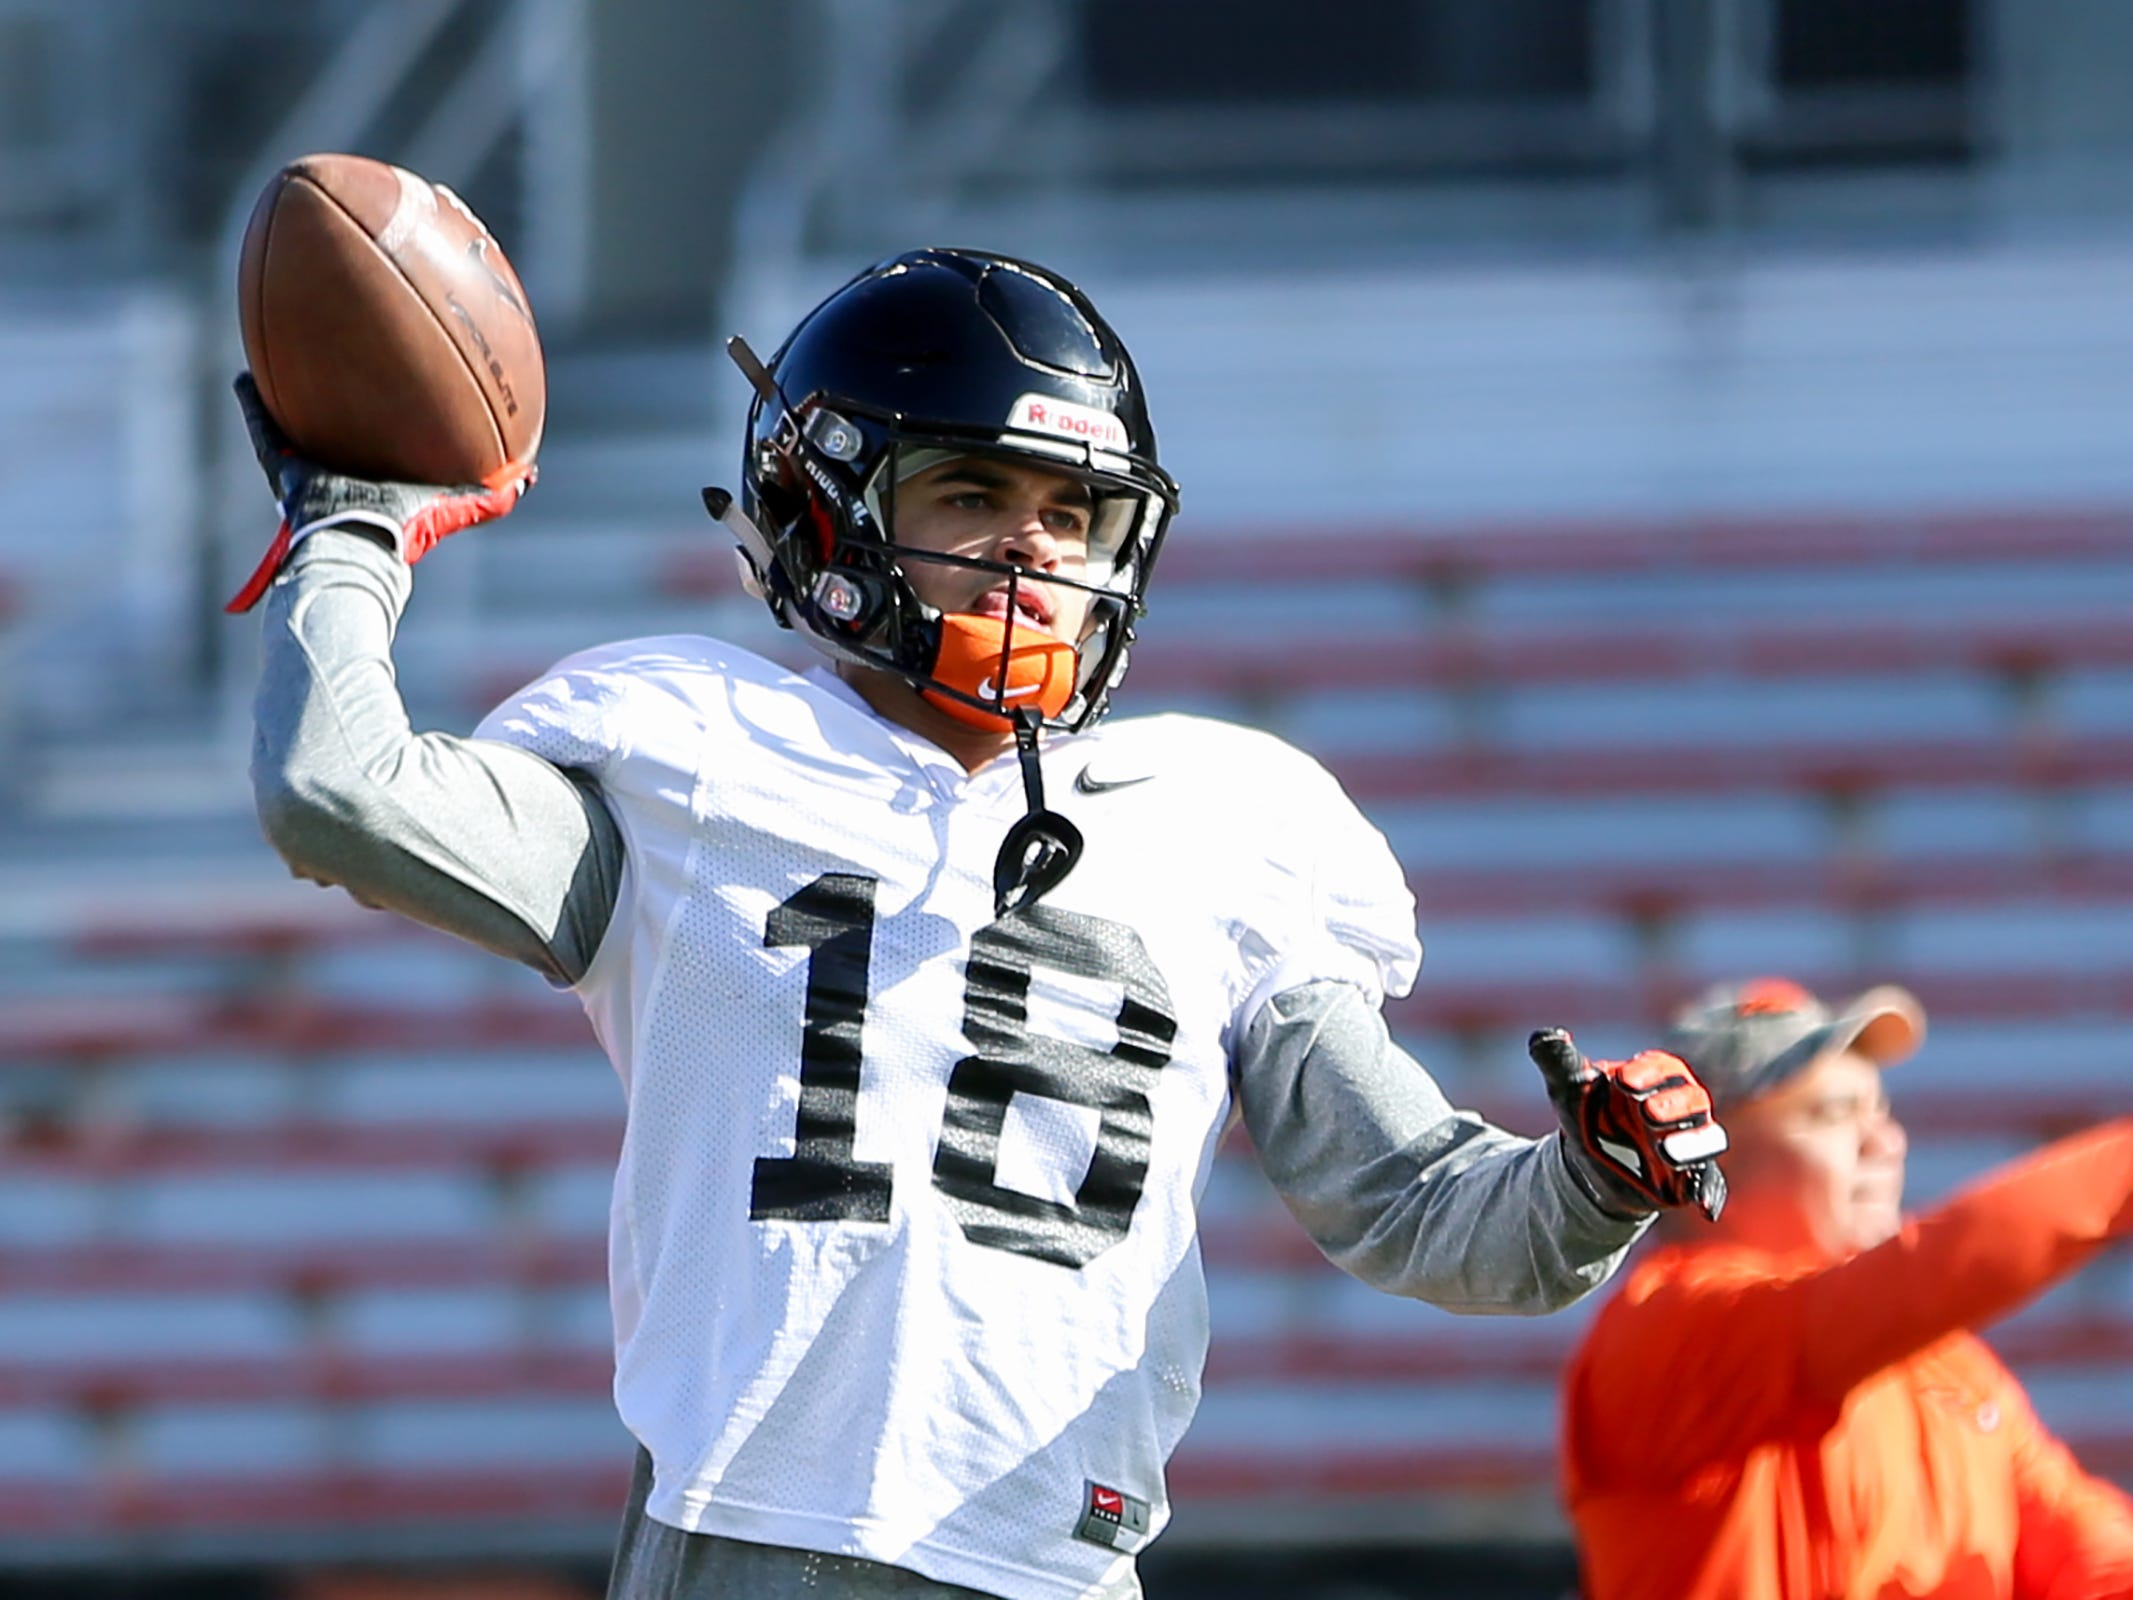 Oregon State University wide receiver Anthony Gould (18) practices at Oregon State University in Corvallis on April 9, 2019. Gould is a West Salem High School alumnus.